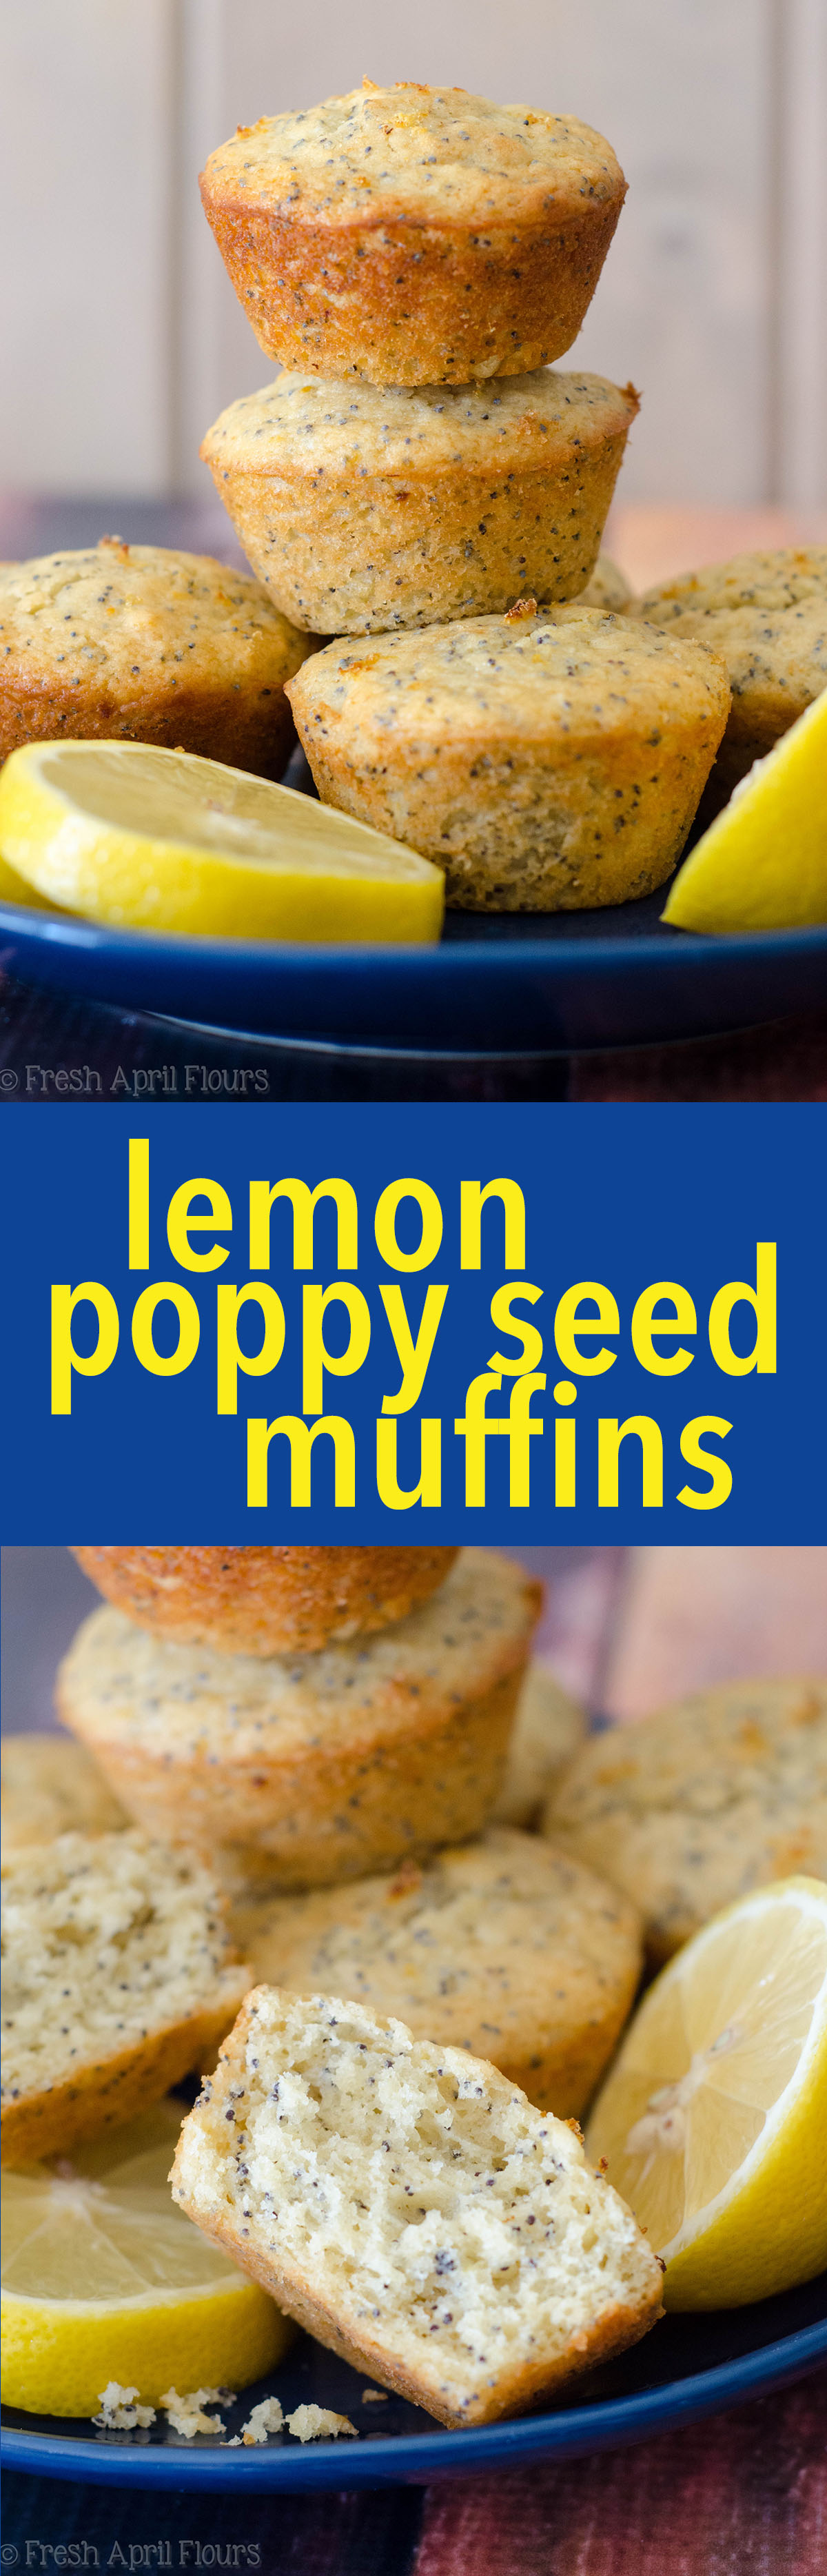 Lemon Poppy Seed Muffins: Moist and fluffy lemon muffins dotted with plenty of poppy seeds. Slightly crunchy on the outside and soft and flavorful on the inside.